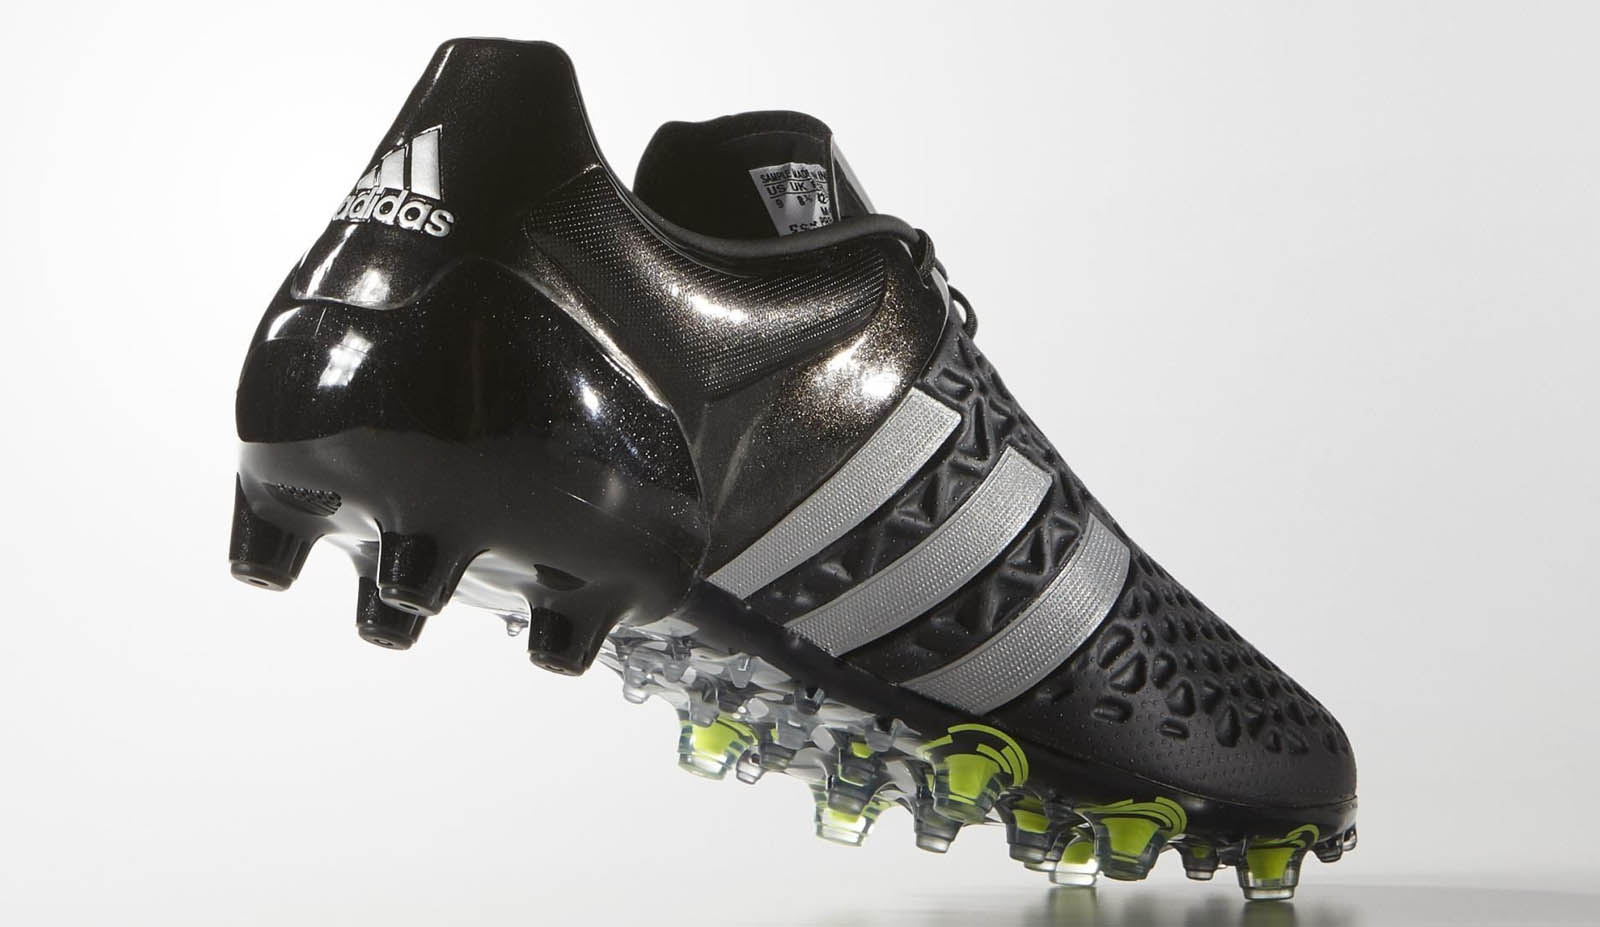 detailed look 5f7bd 8c7c3 ... Handmade adidas - Football Boots - Ace15.2 FGAG Boots - Black - 7.5  Year Black Reflective Adidas Ace 2015 Boots Revealed ...